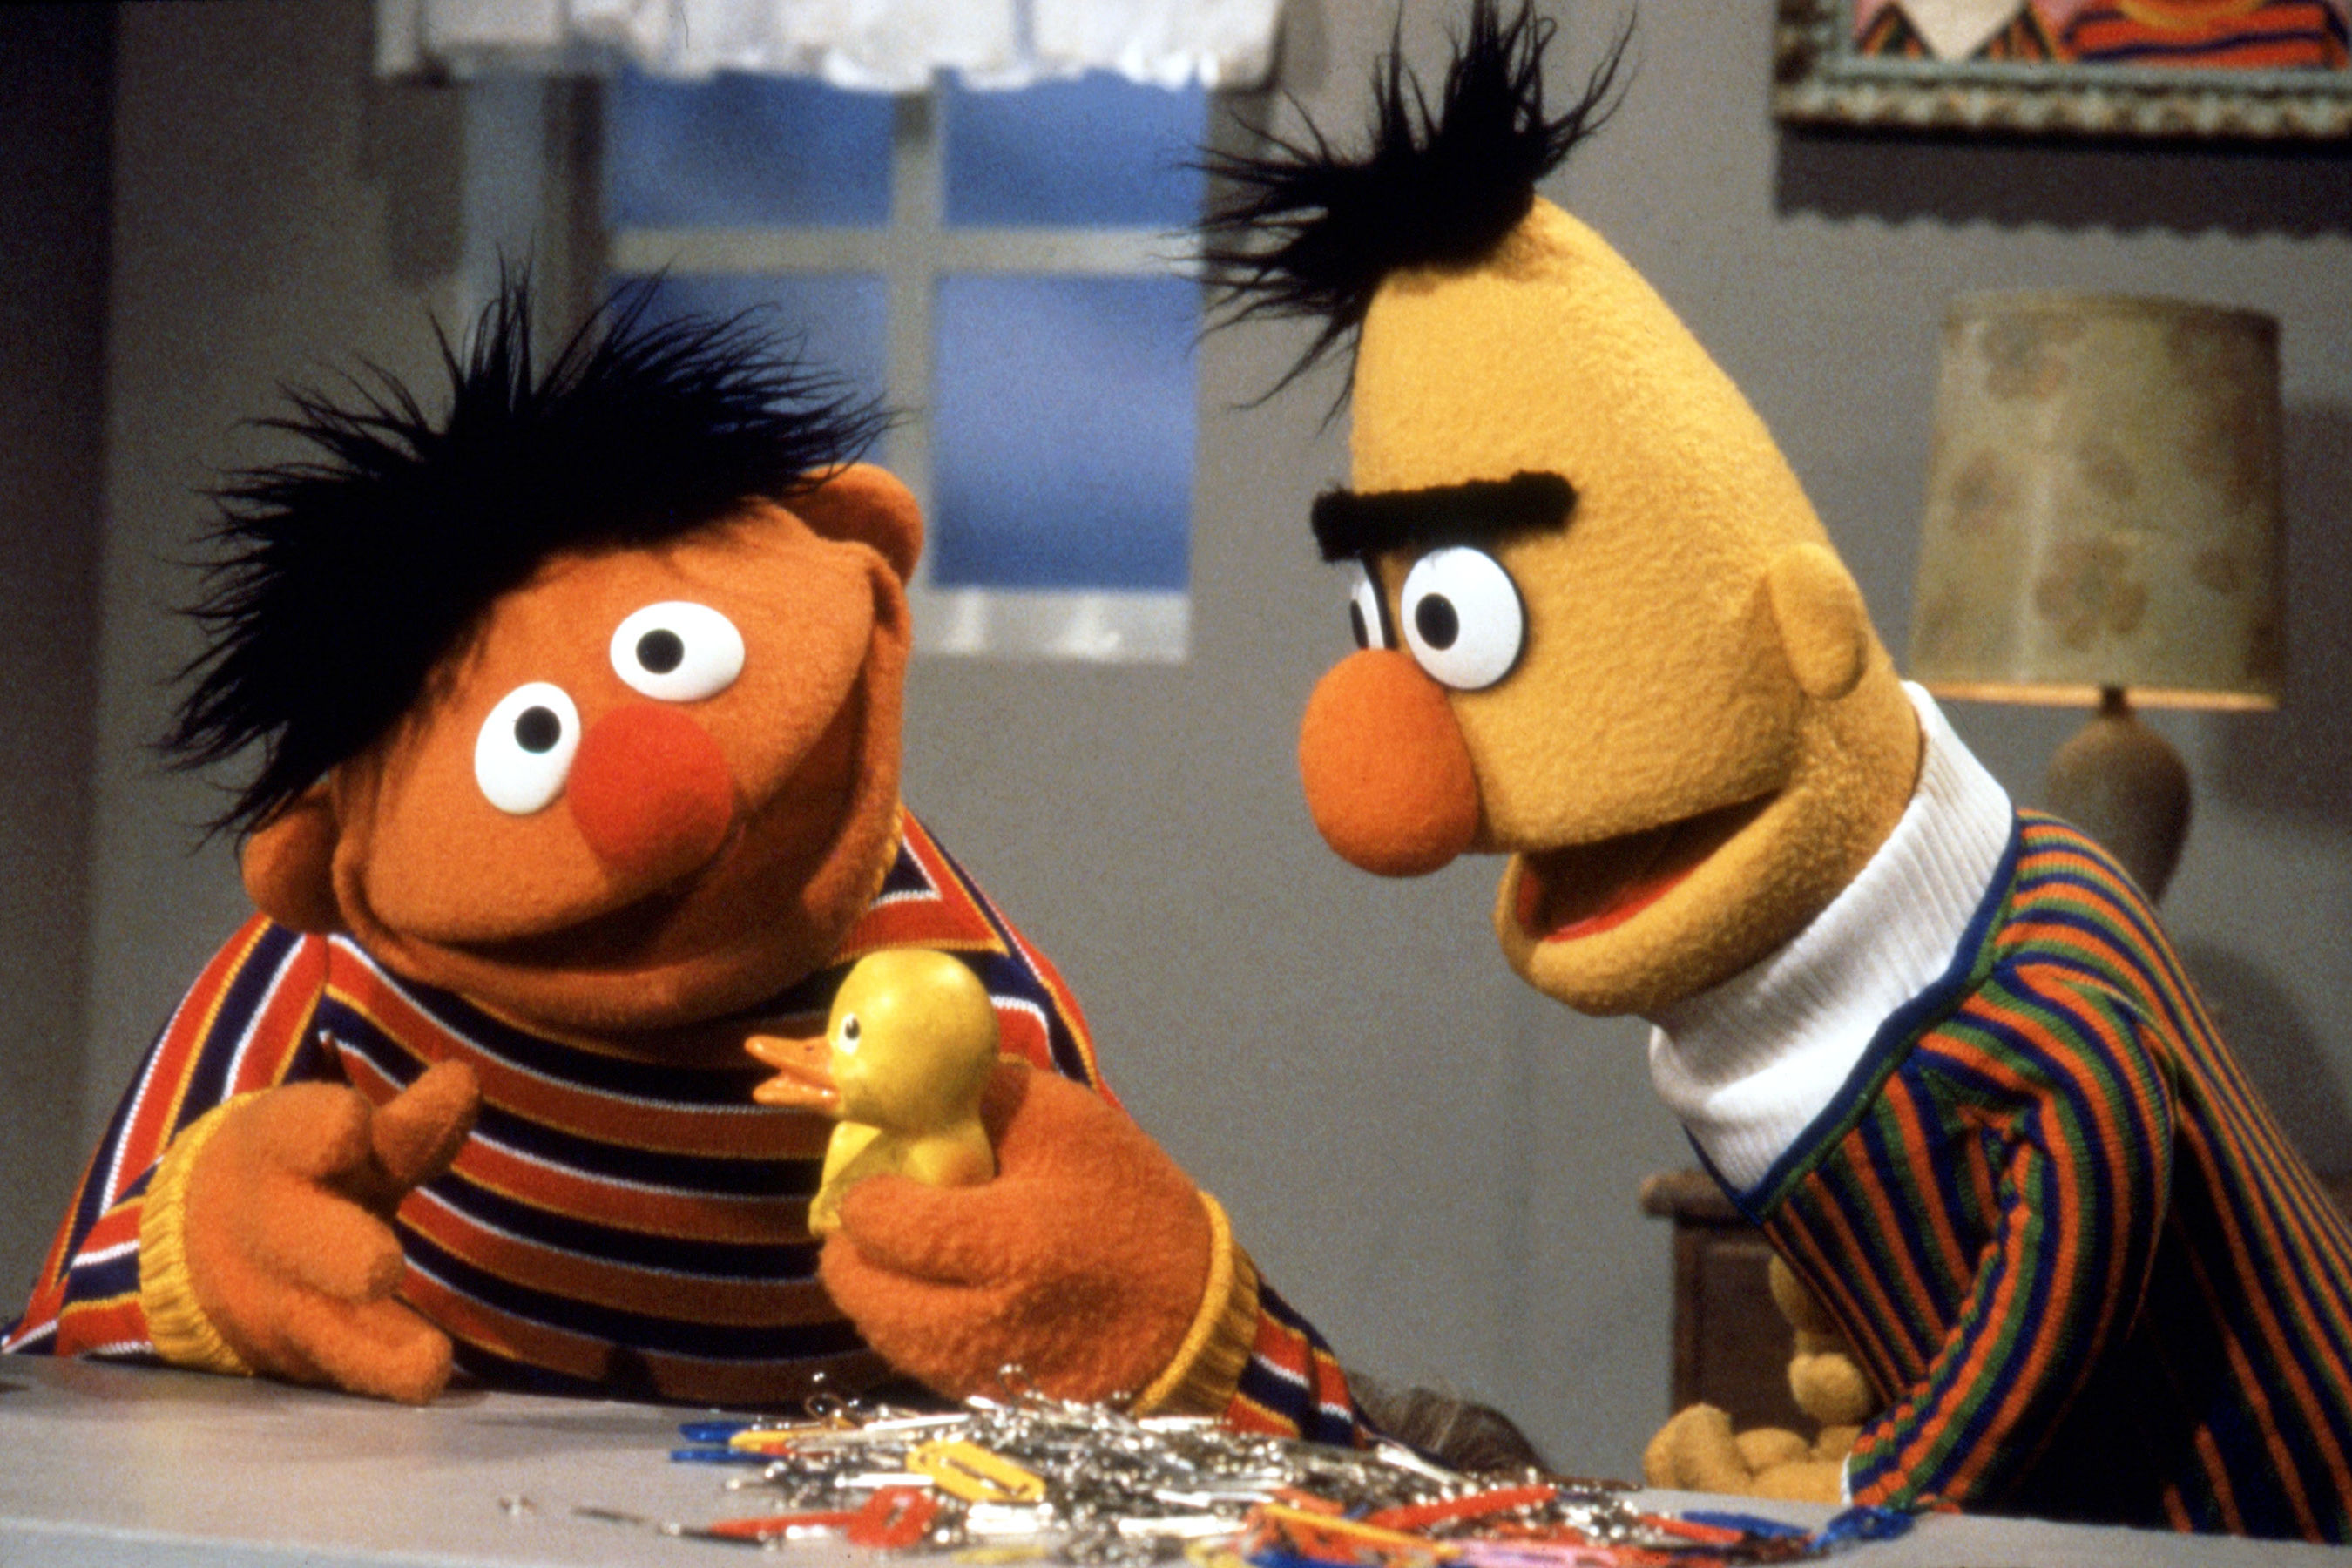 New Study Shows Sesame Street Viewership Can Lead to Kids' Success in School and Work